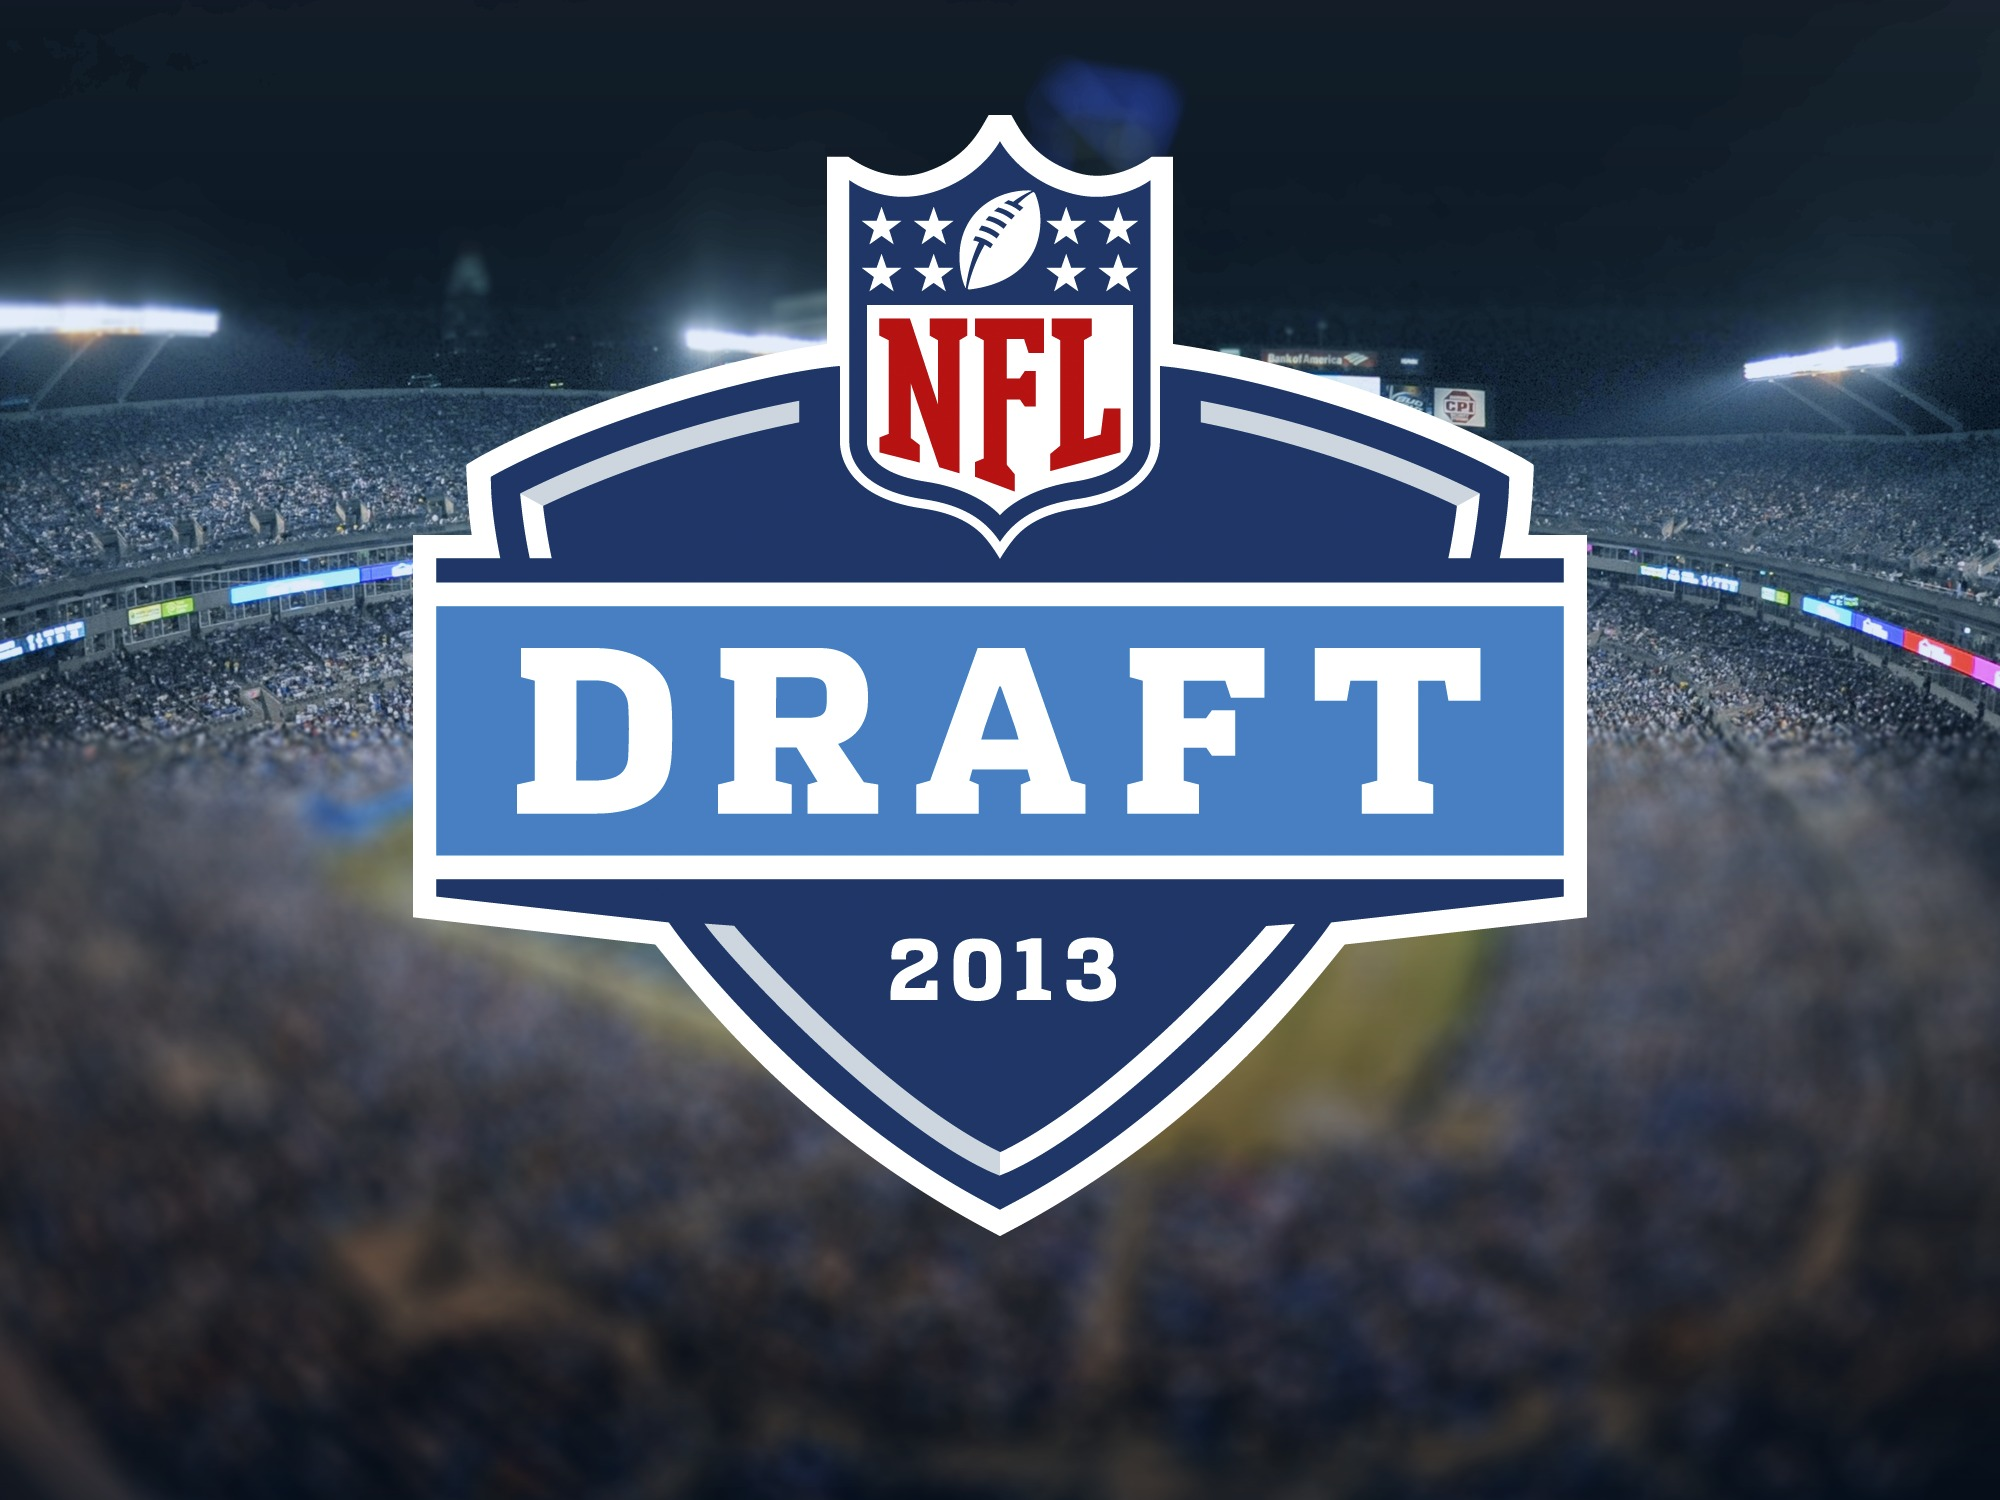 Nfl Logo Wallpapers Top Collections of Pictures Images Wallpaper 2000x1500